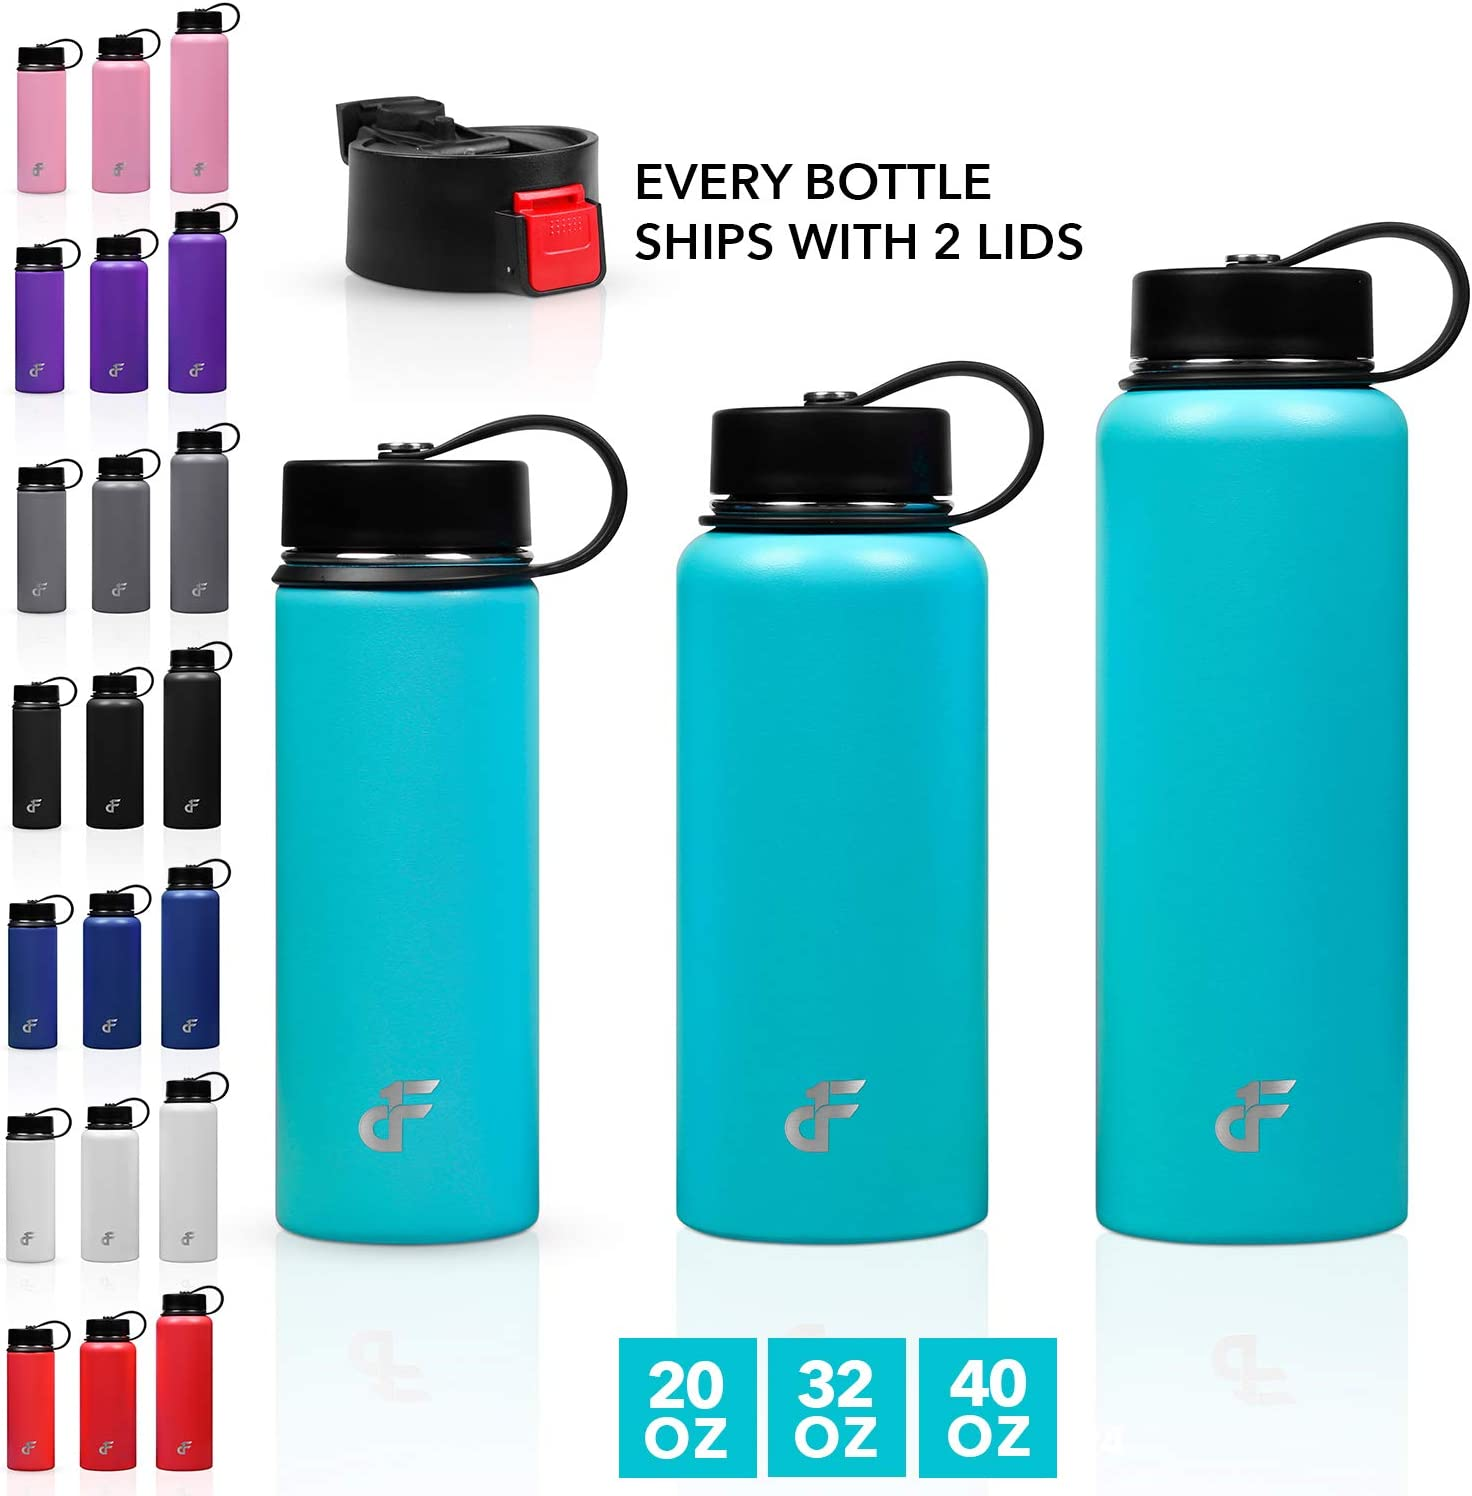 Day 1 Fitness 20 oz. Double Wall SS Wide Mouth Water Bottle 2 Lids Teal